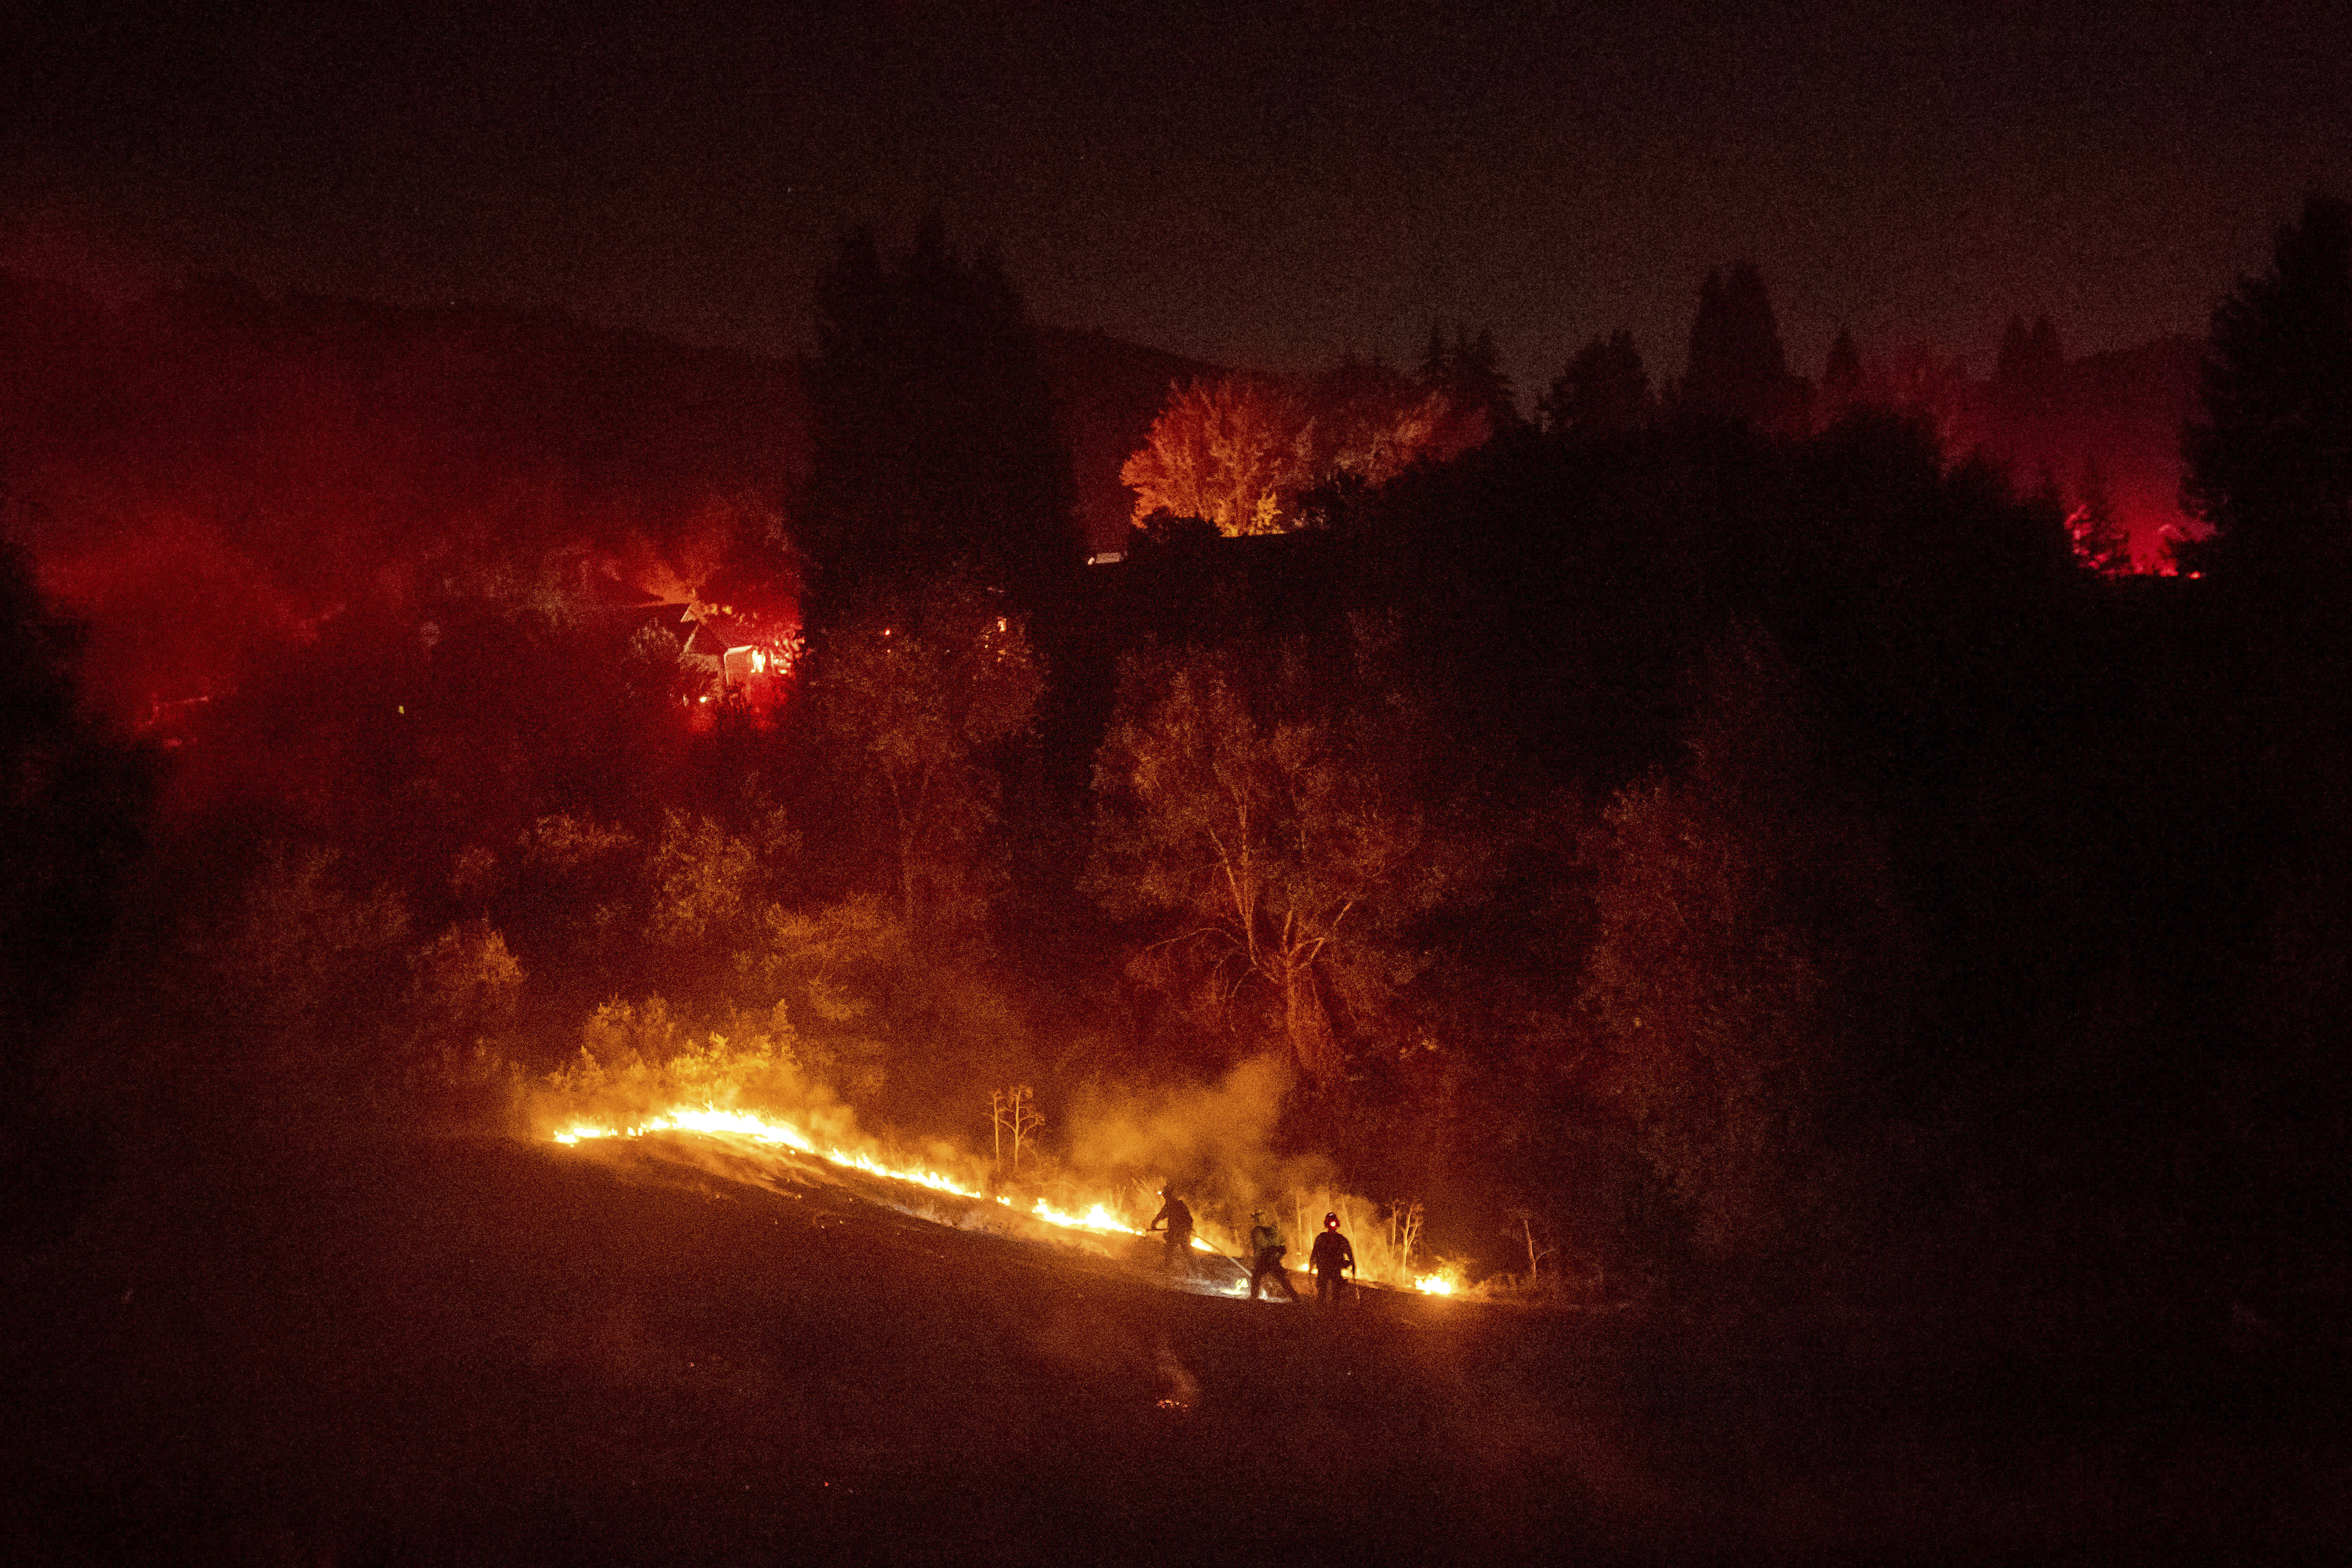 CA wildfires force 4 Kaiser Permanente hospitals to operate on generators: CEO